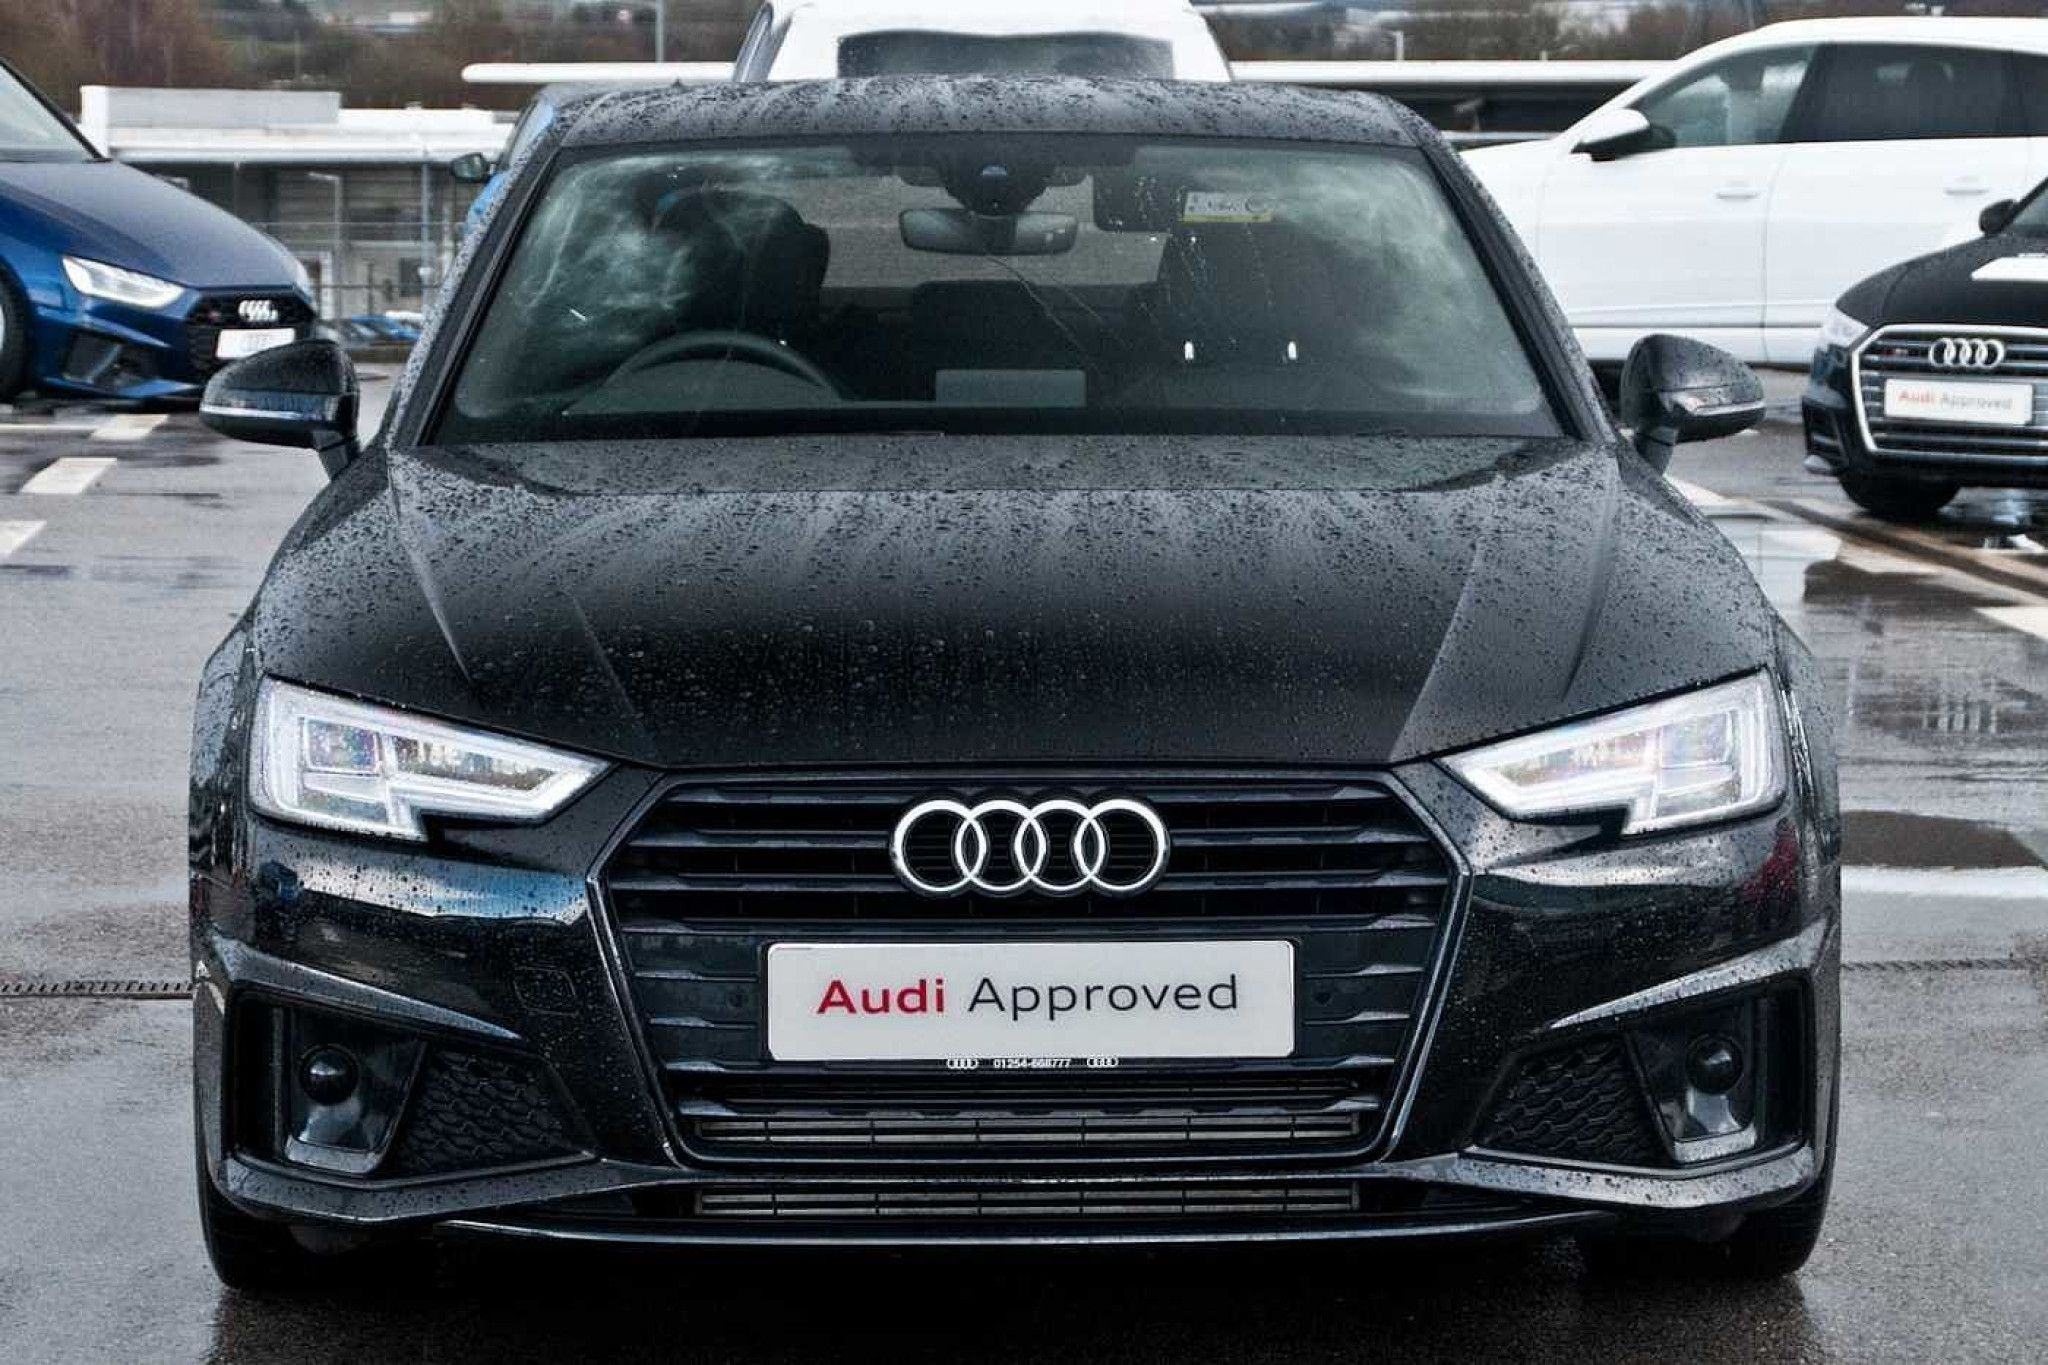 Audi A4 35 Tfsi Black Edition 4dr S Tronic In 2020 Audi A4 Black